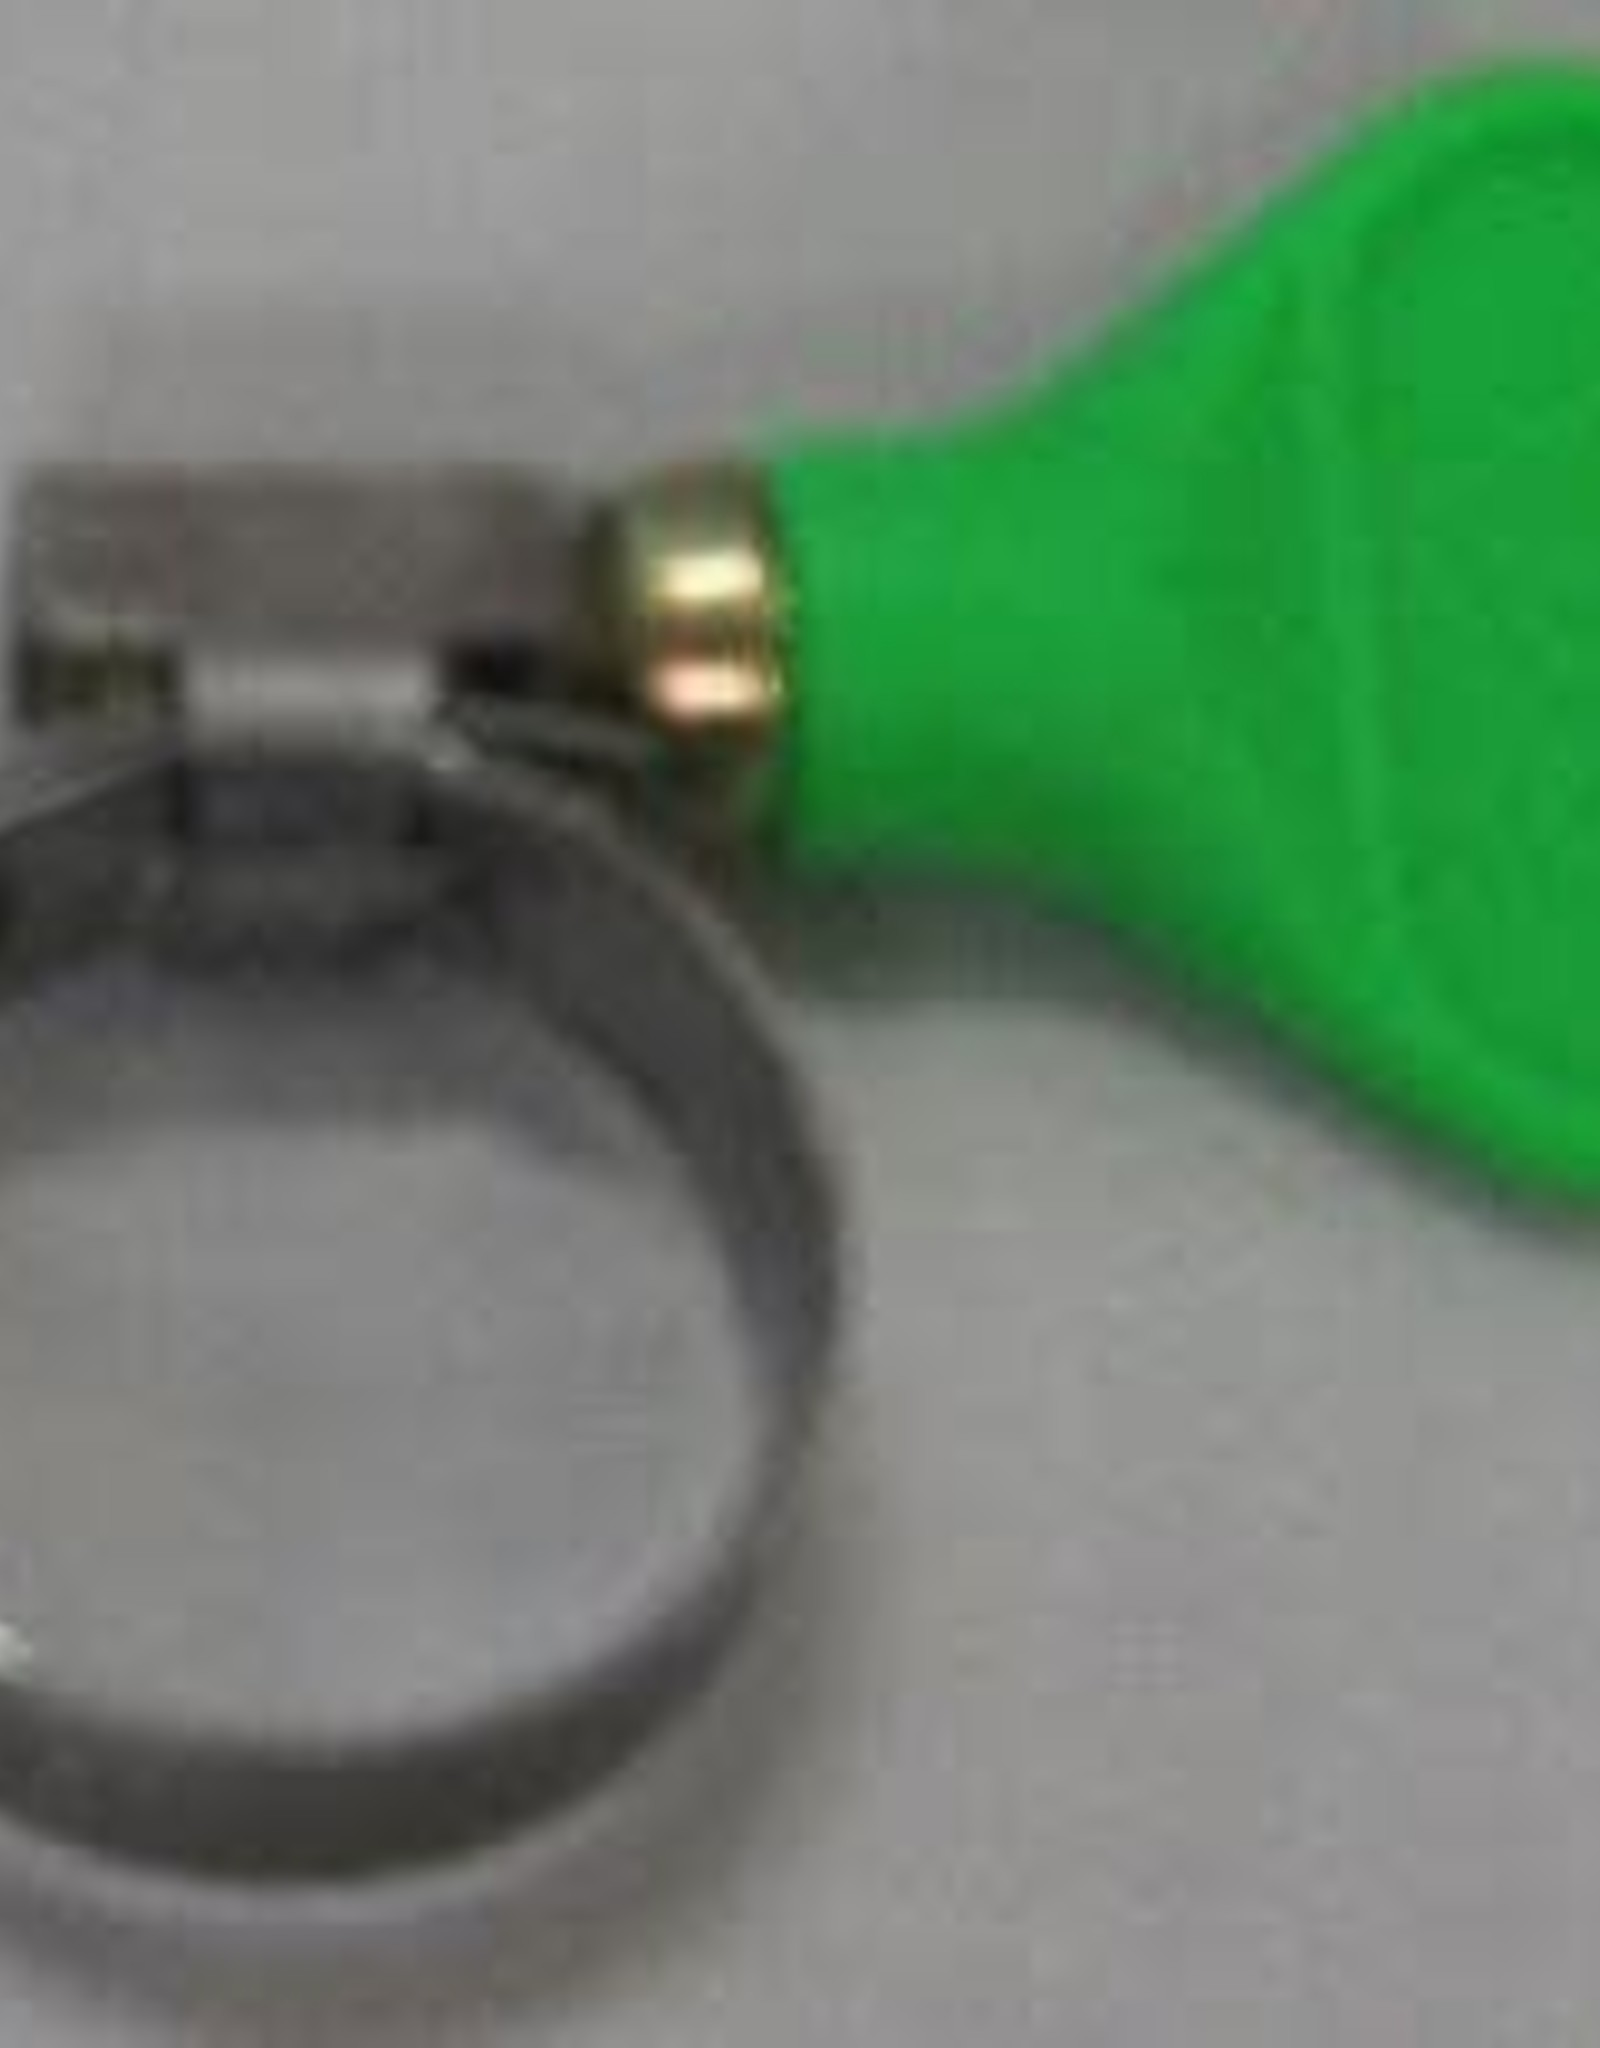 "CLAMP- EASY TURN(GREEN) 3/4"" FITS 1/2"" HOSE"